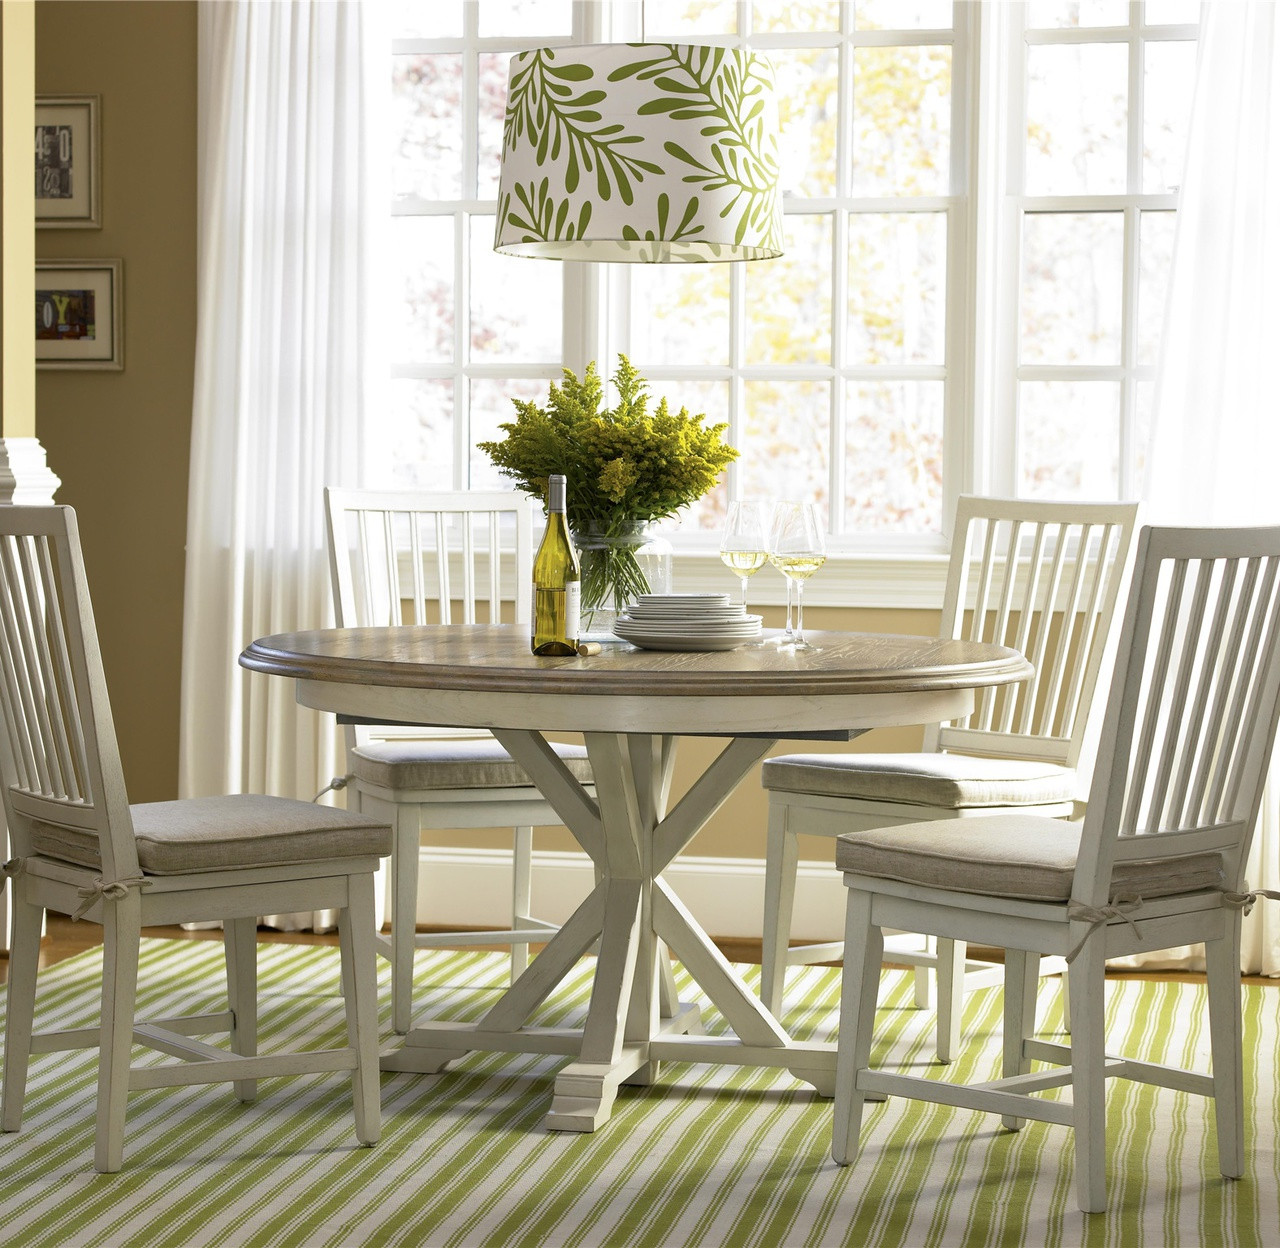 Coastal beach white oak round dining room set zin home for White round dining room table